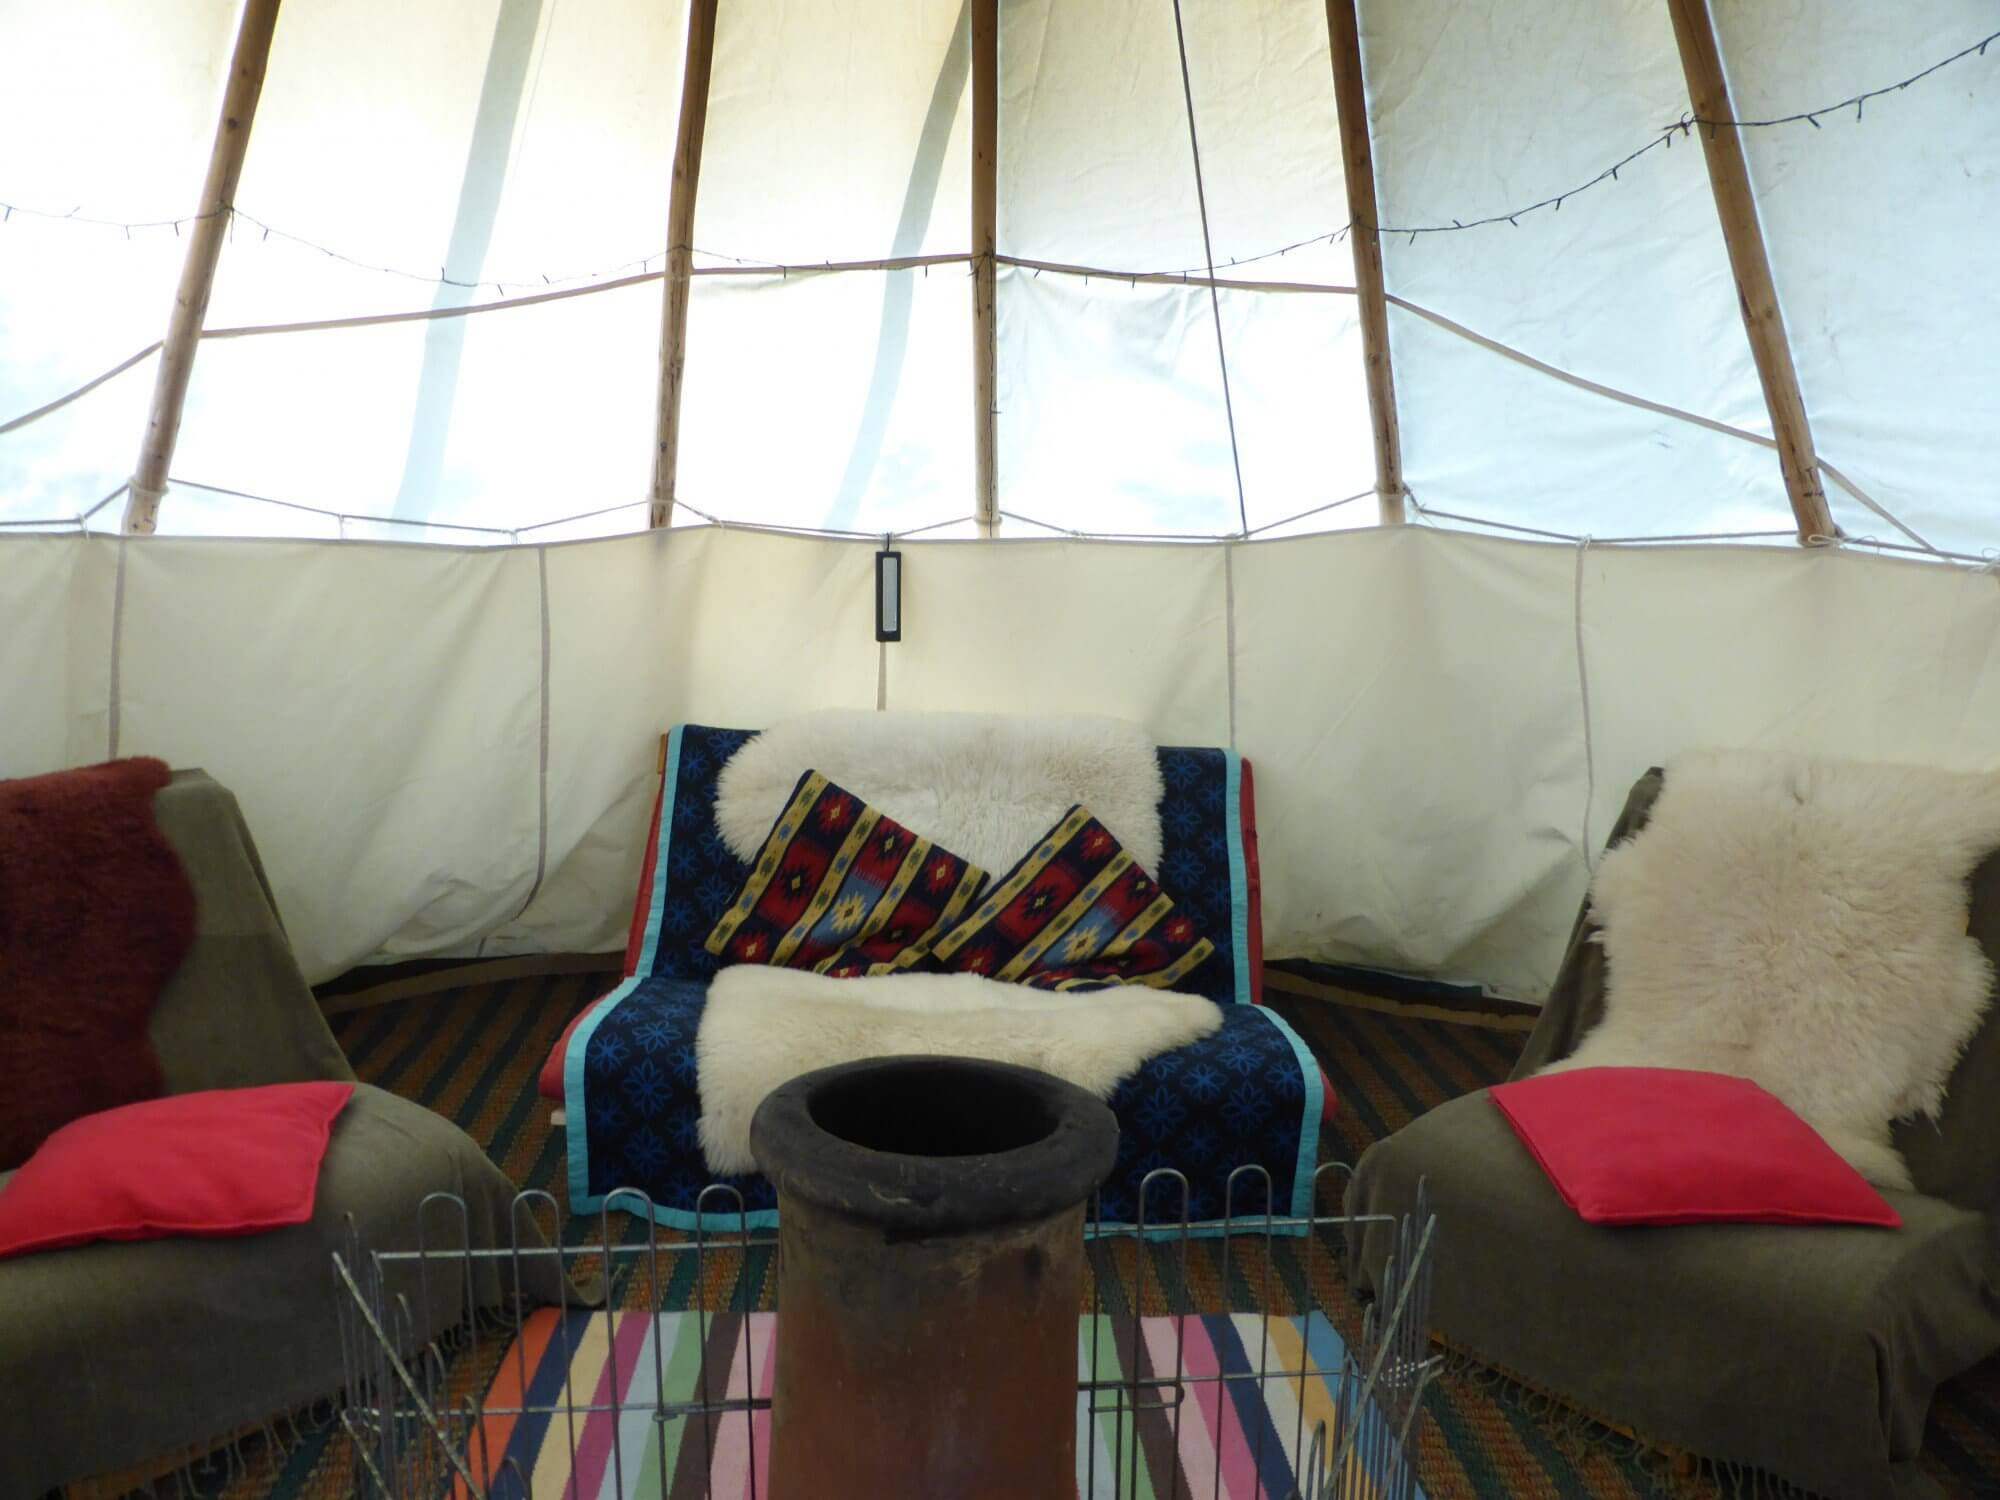 The dream of every kid: live in a wigwam for a few days!